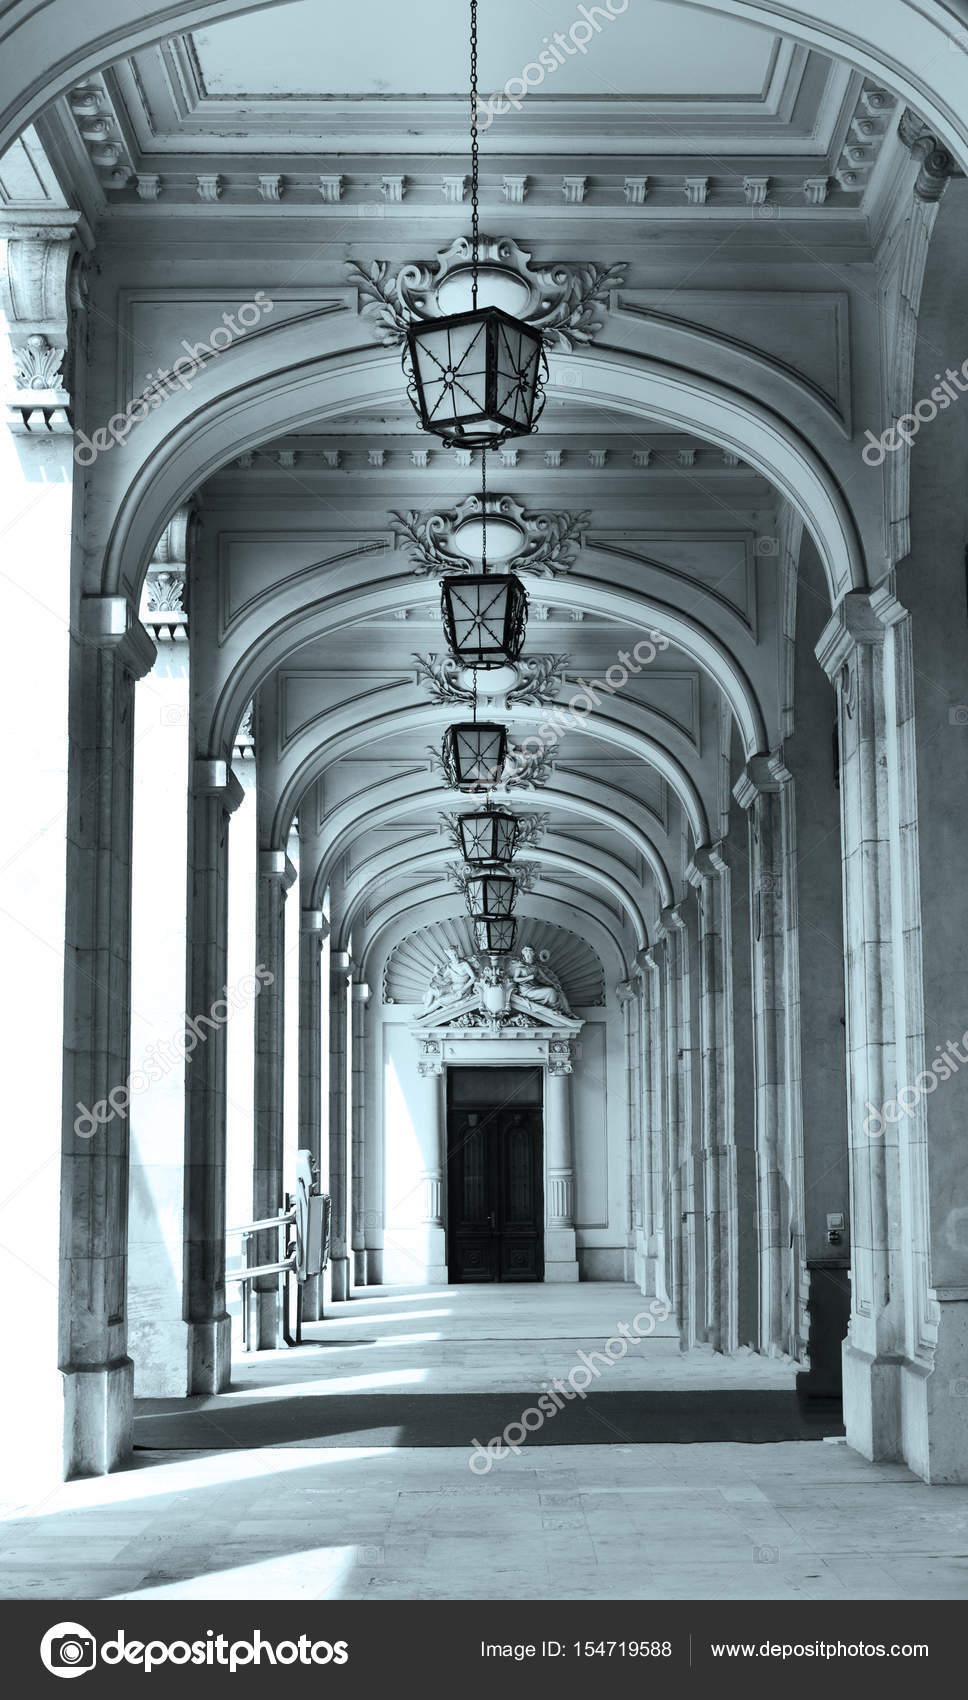 architectural detail photography. Contemporary Architectural Arcades Architecture Detail Photography U2014 Stock Photo For Architectural Detail Photography A